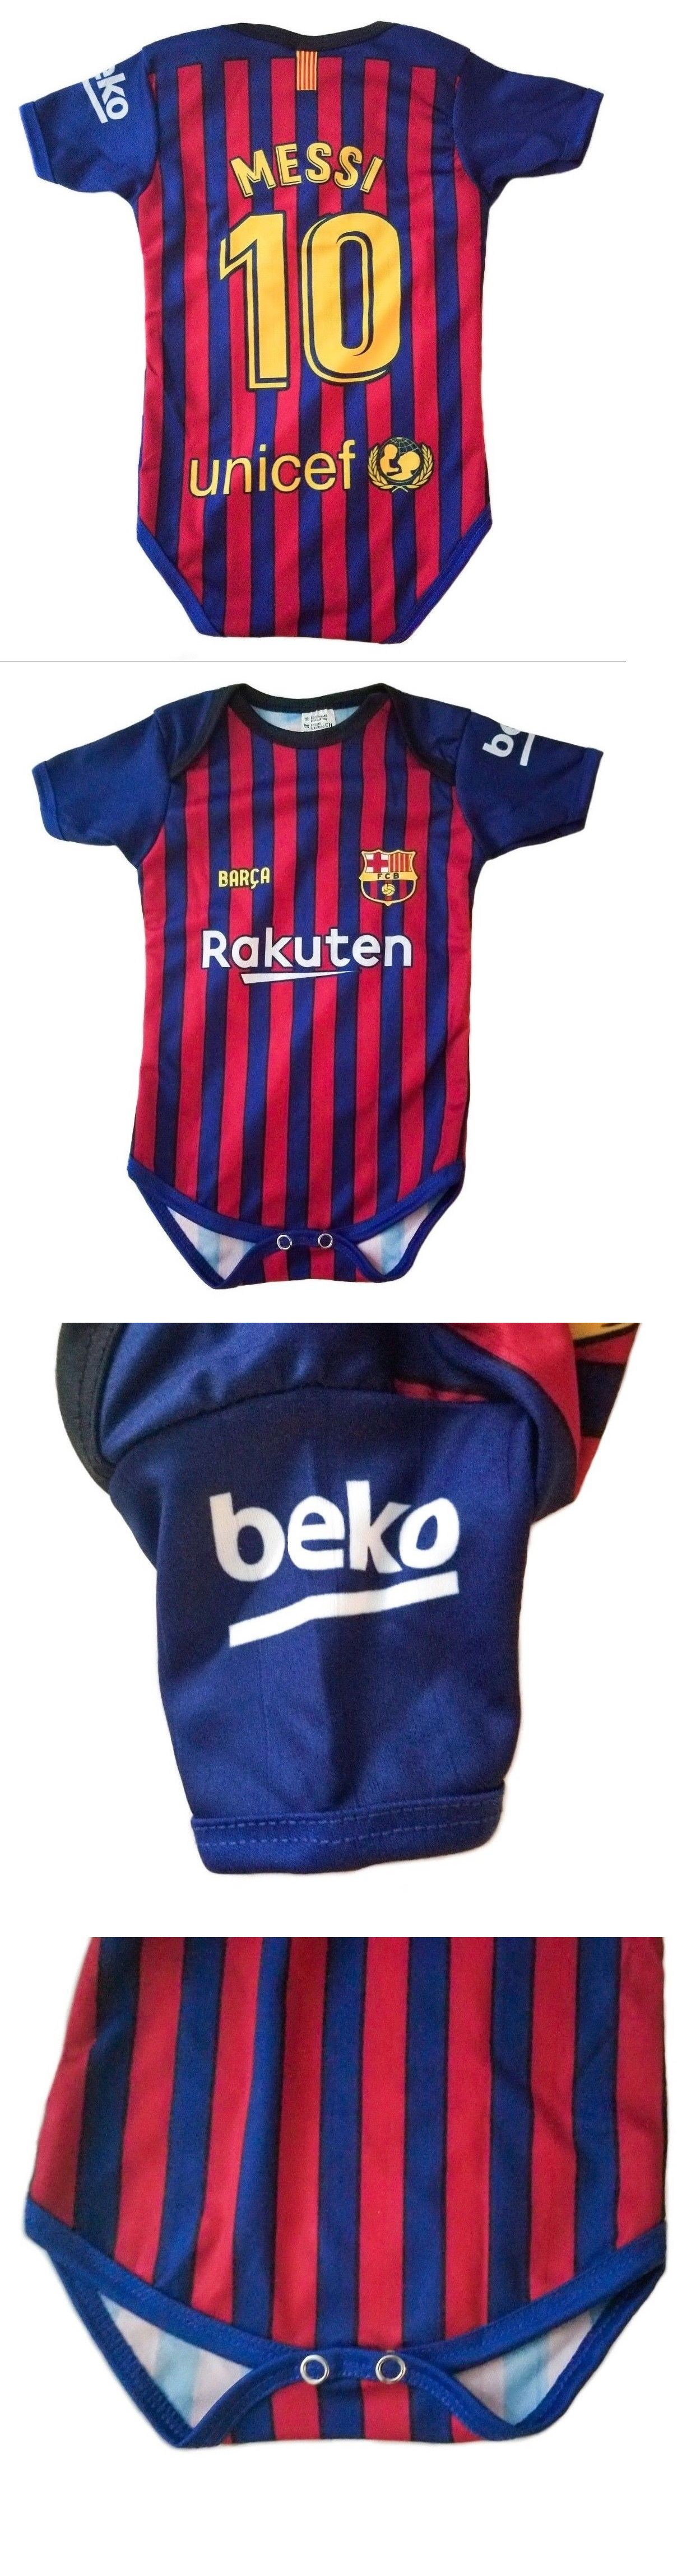 Clothing 33485  Messi Striped 2018 Home Fc Barcelona Barça Baby Jersey  Overall Pañalero Mameluco -  BUY IT NOW ONLY   17.85 on  eBay  clothing   messi ... 96e83fc95